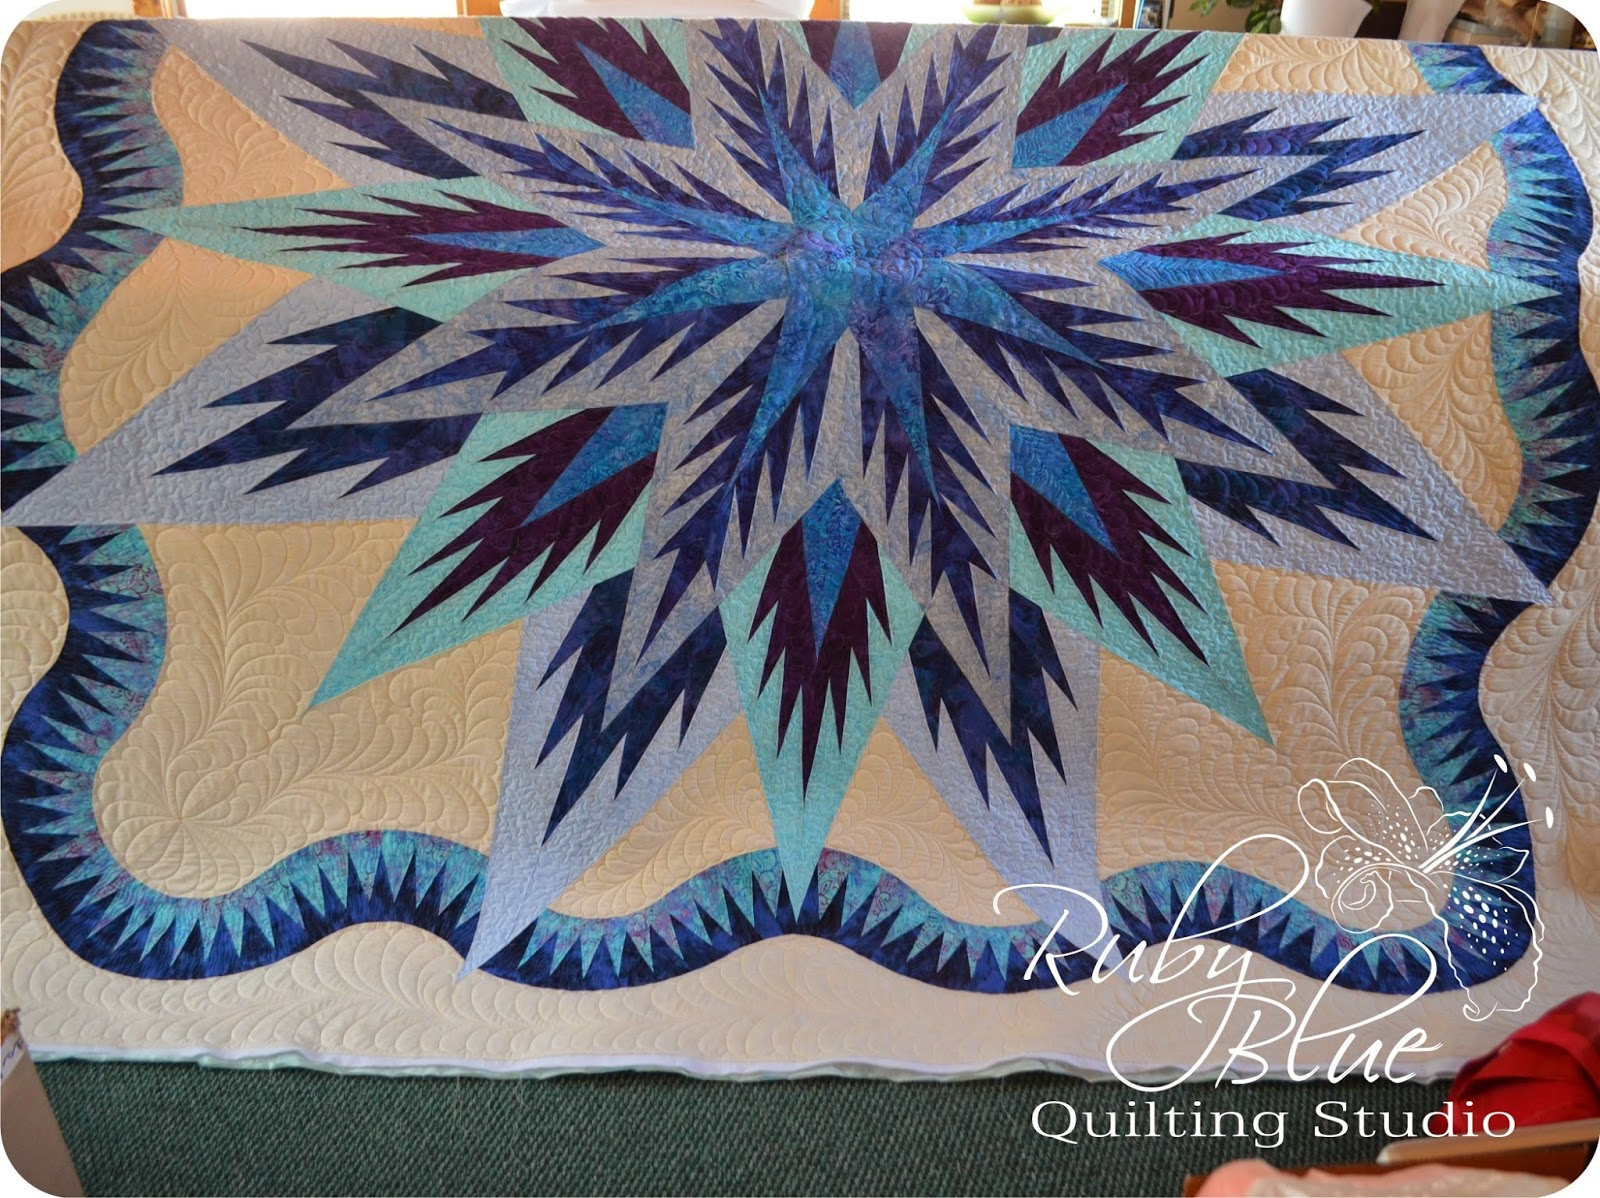 Ruby Blue Quilting Studio: Machine Quilting: Feathered Star Queen : feathered star quilts - Adamdwight.com